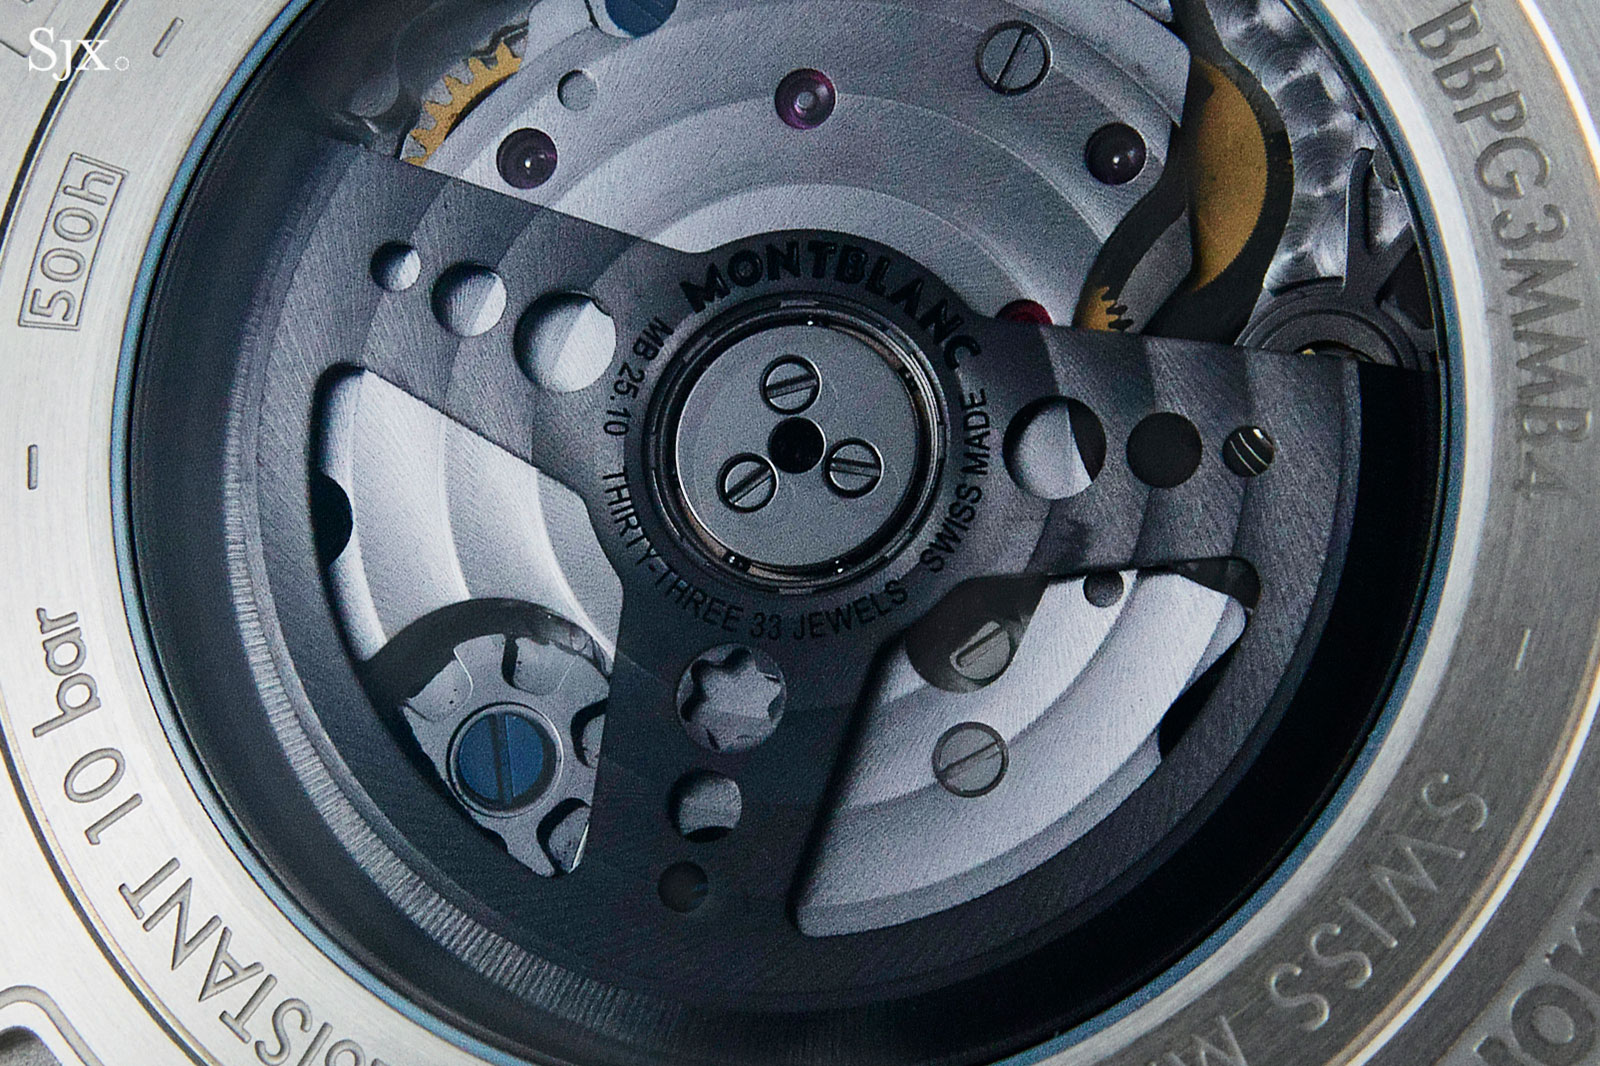 Montblanc TimeWalker Chronograph reverse panda manufacture movement